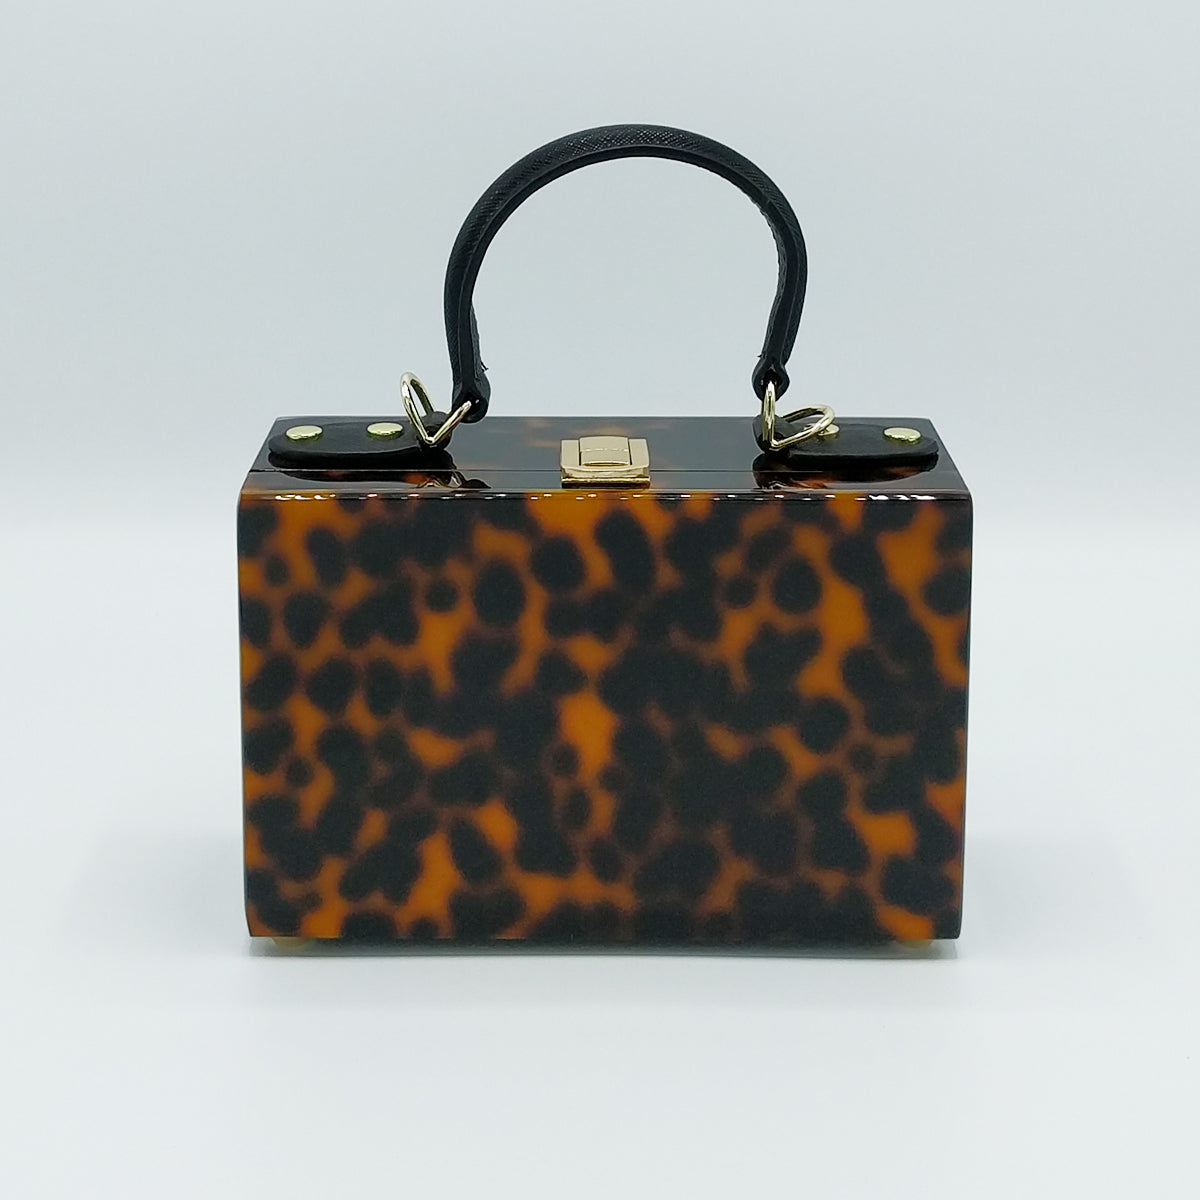 Sea Lily Tortoise Shell Handbag